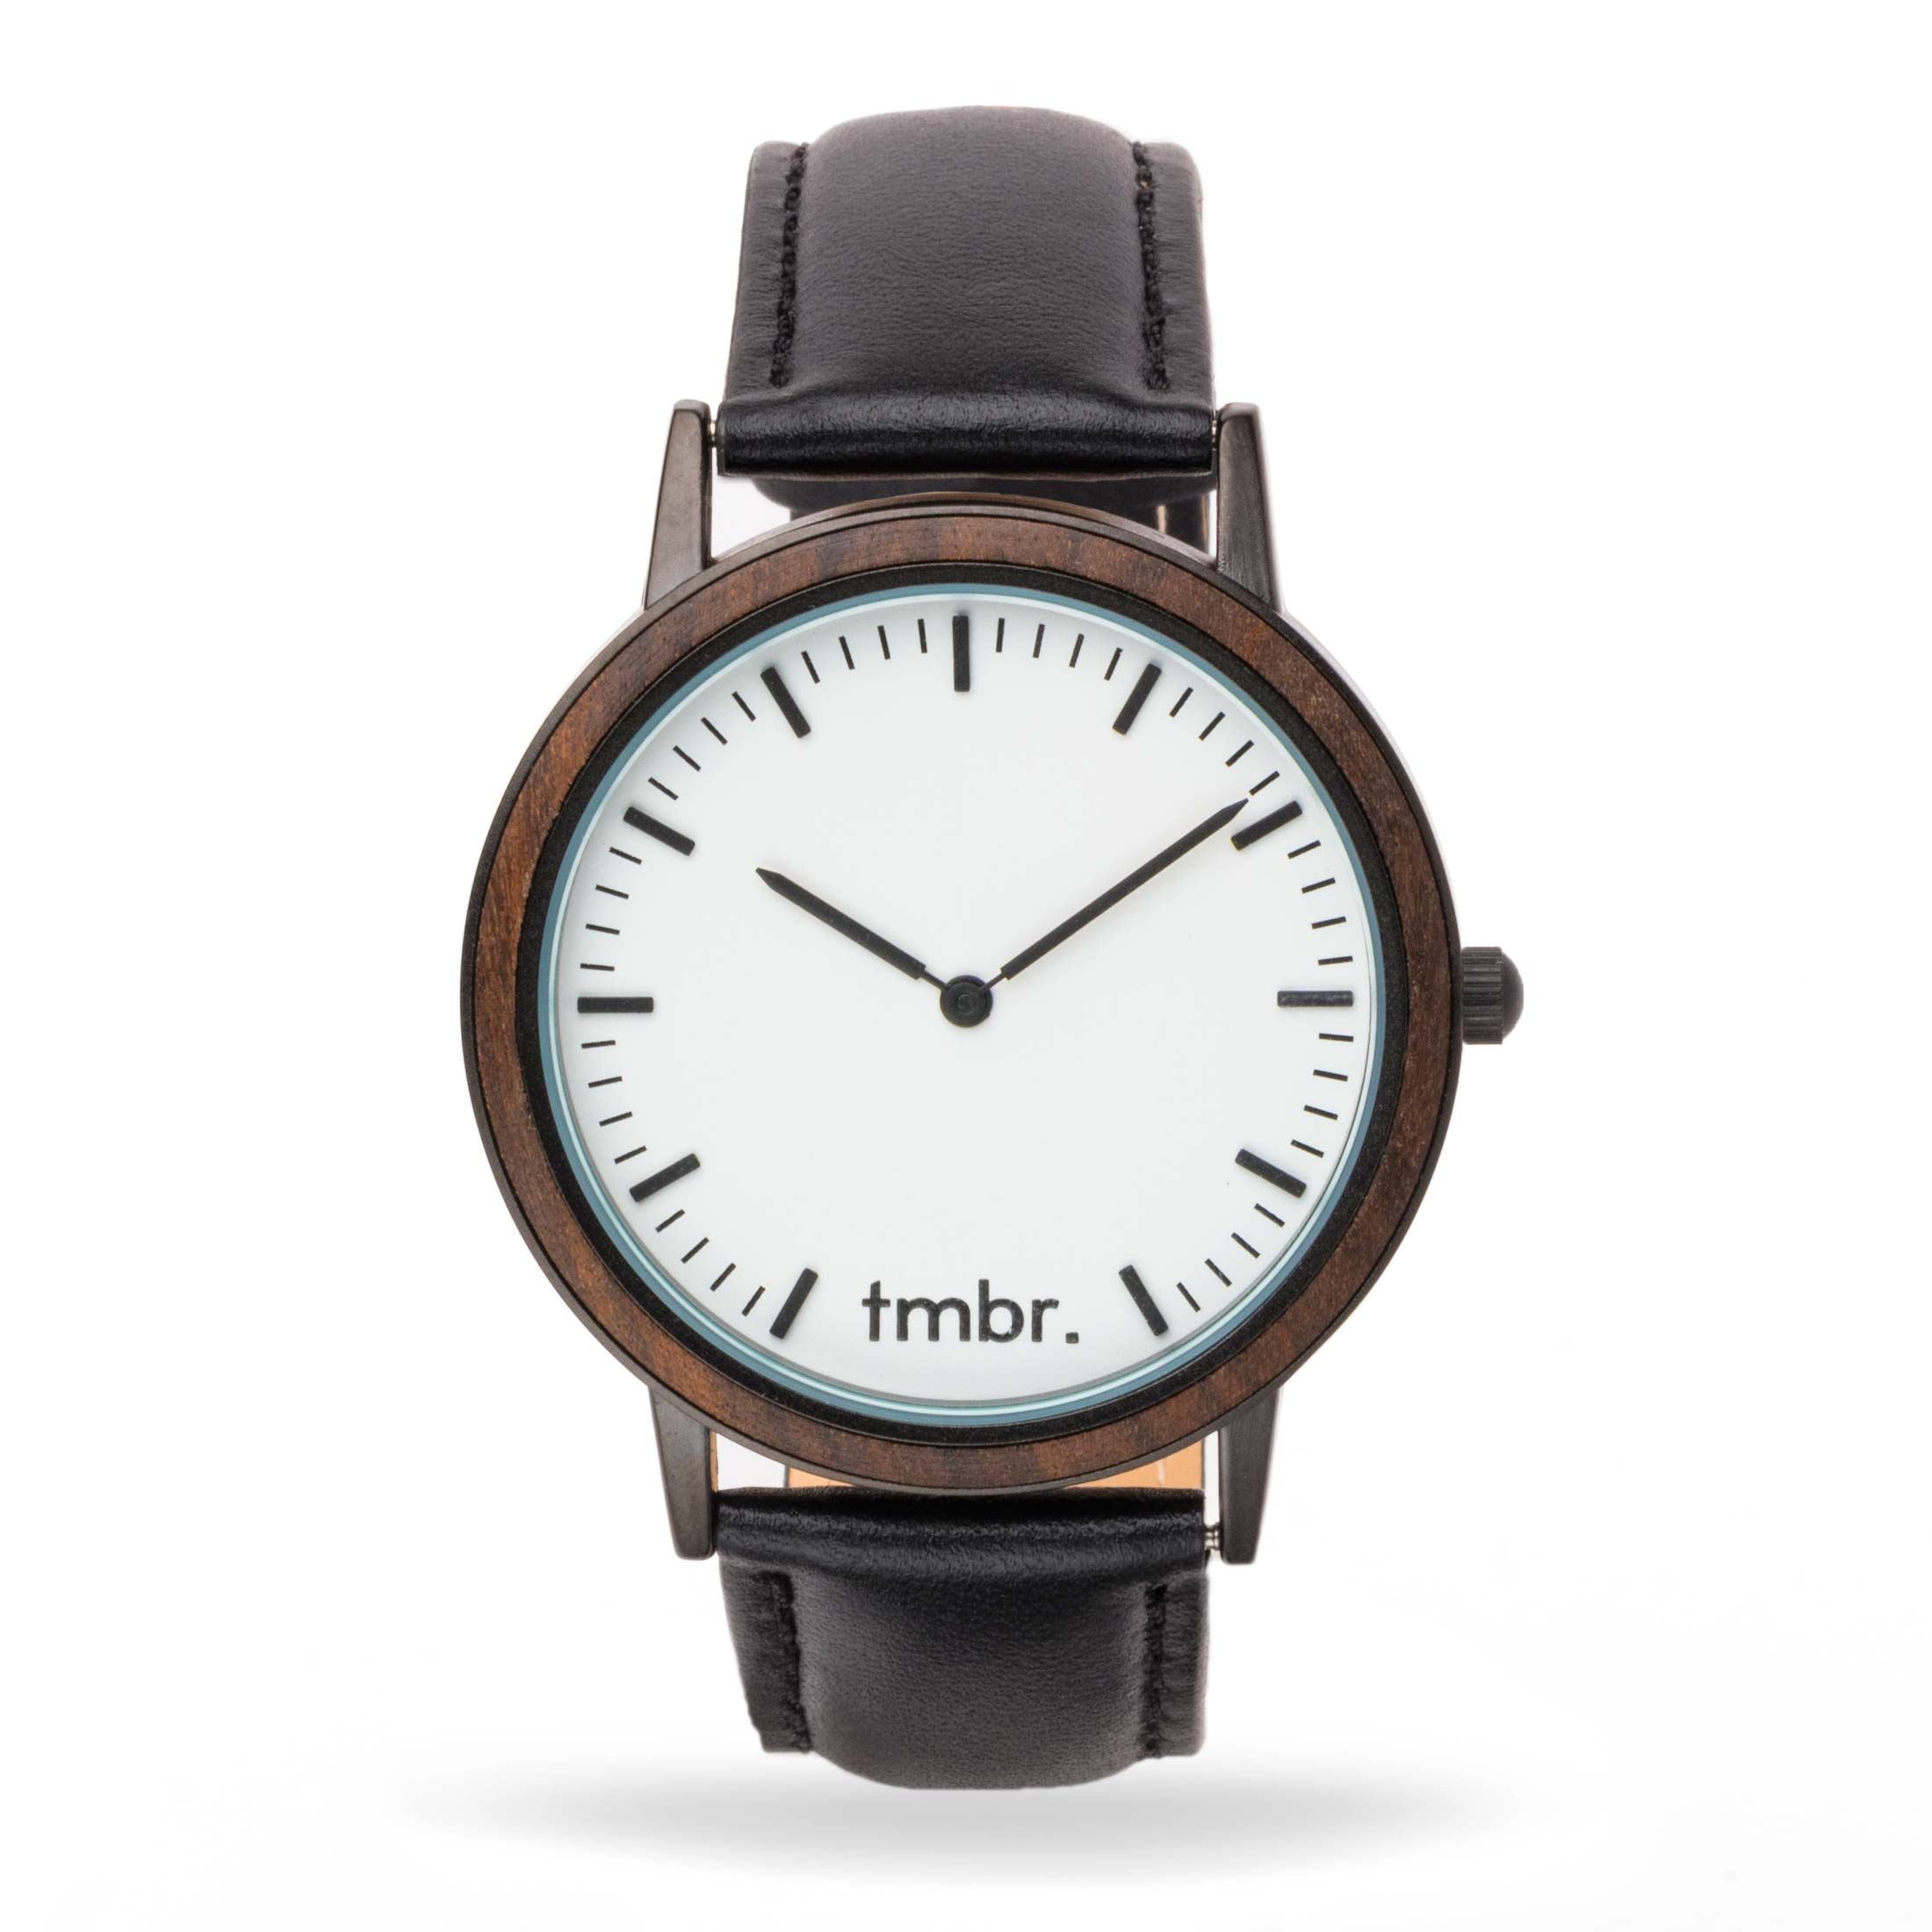 Tmbr Minimalist Wood Watch